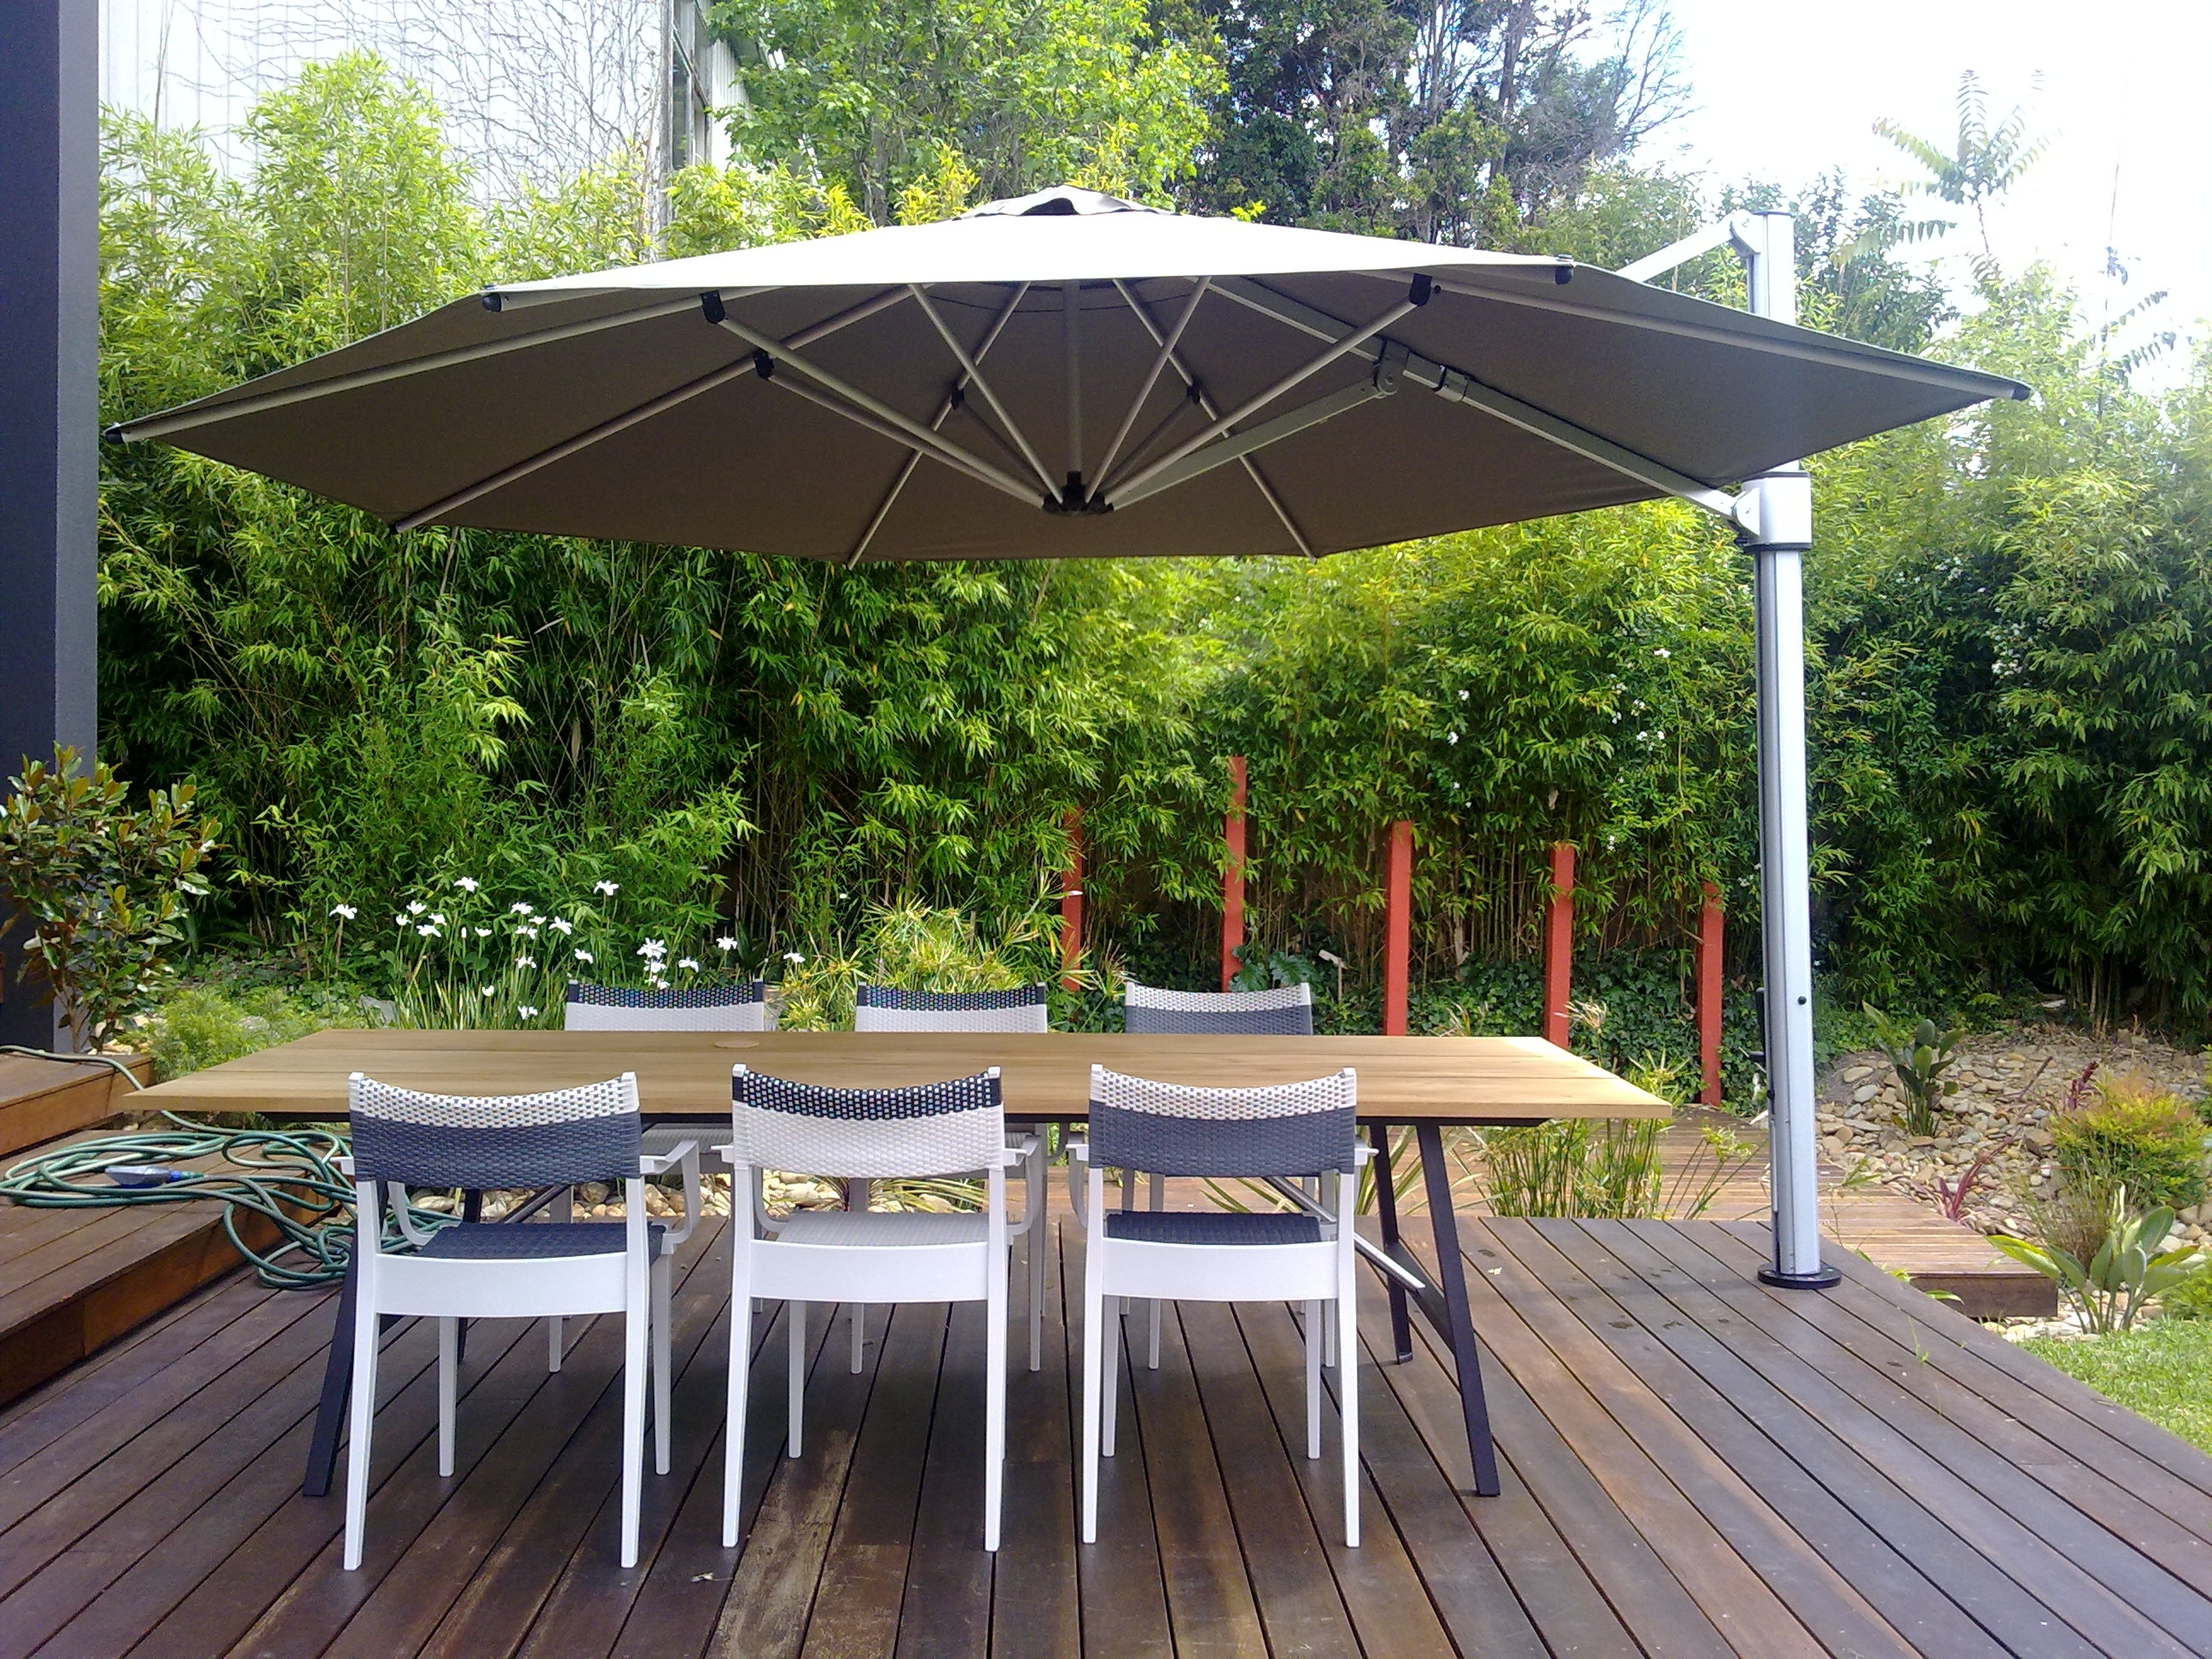 Eclipse Patio Umbrellas Regarding Well Known 4M Octagonal Eclipse Cantilever Umbrella – Instant Shade Umbrellas (Gallery 5 of 20)